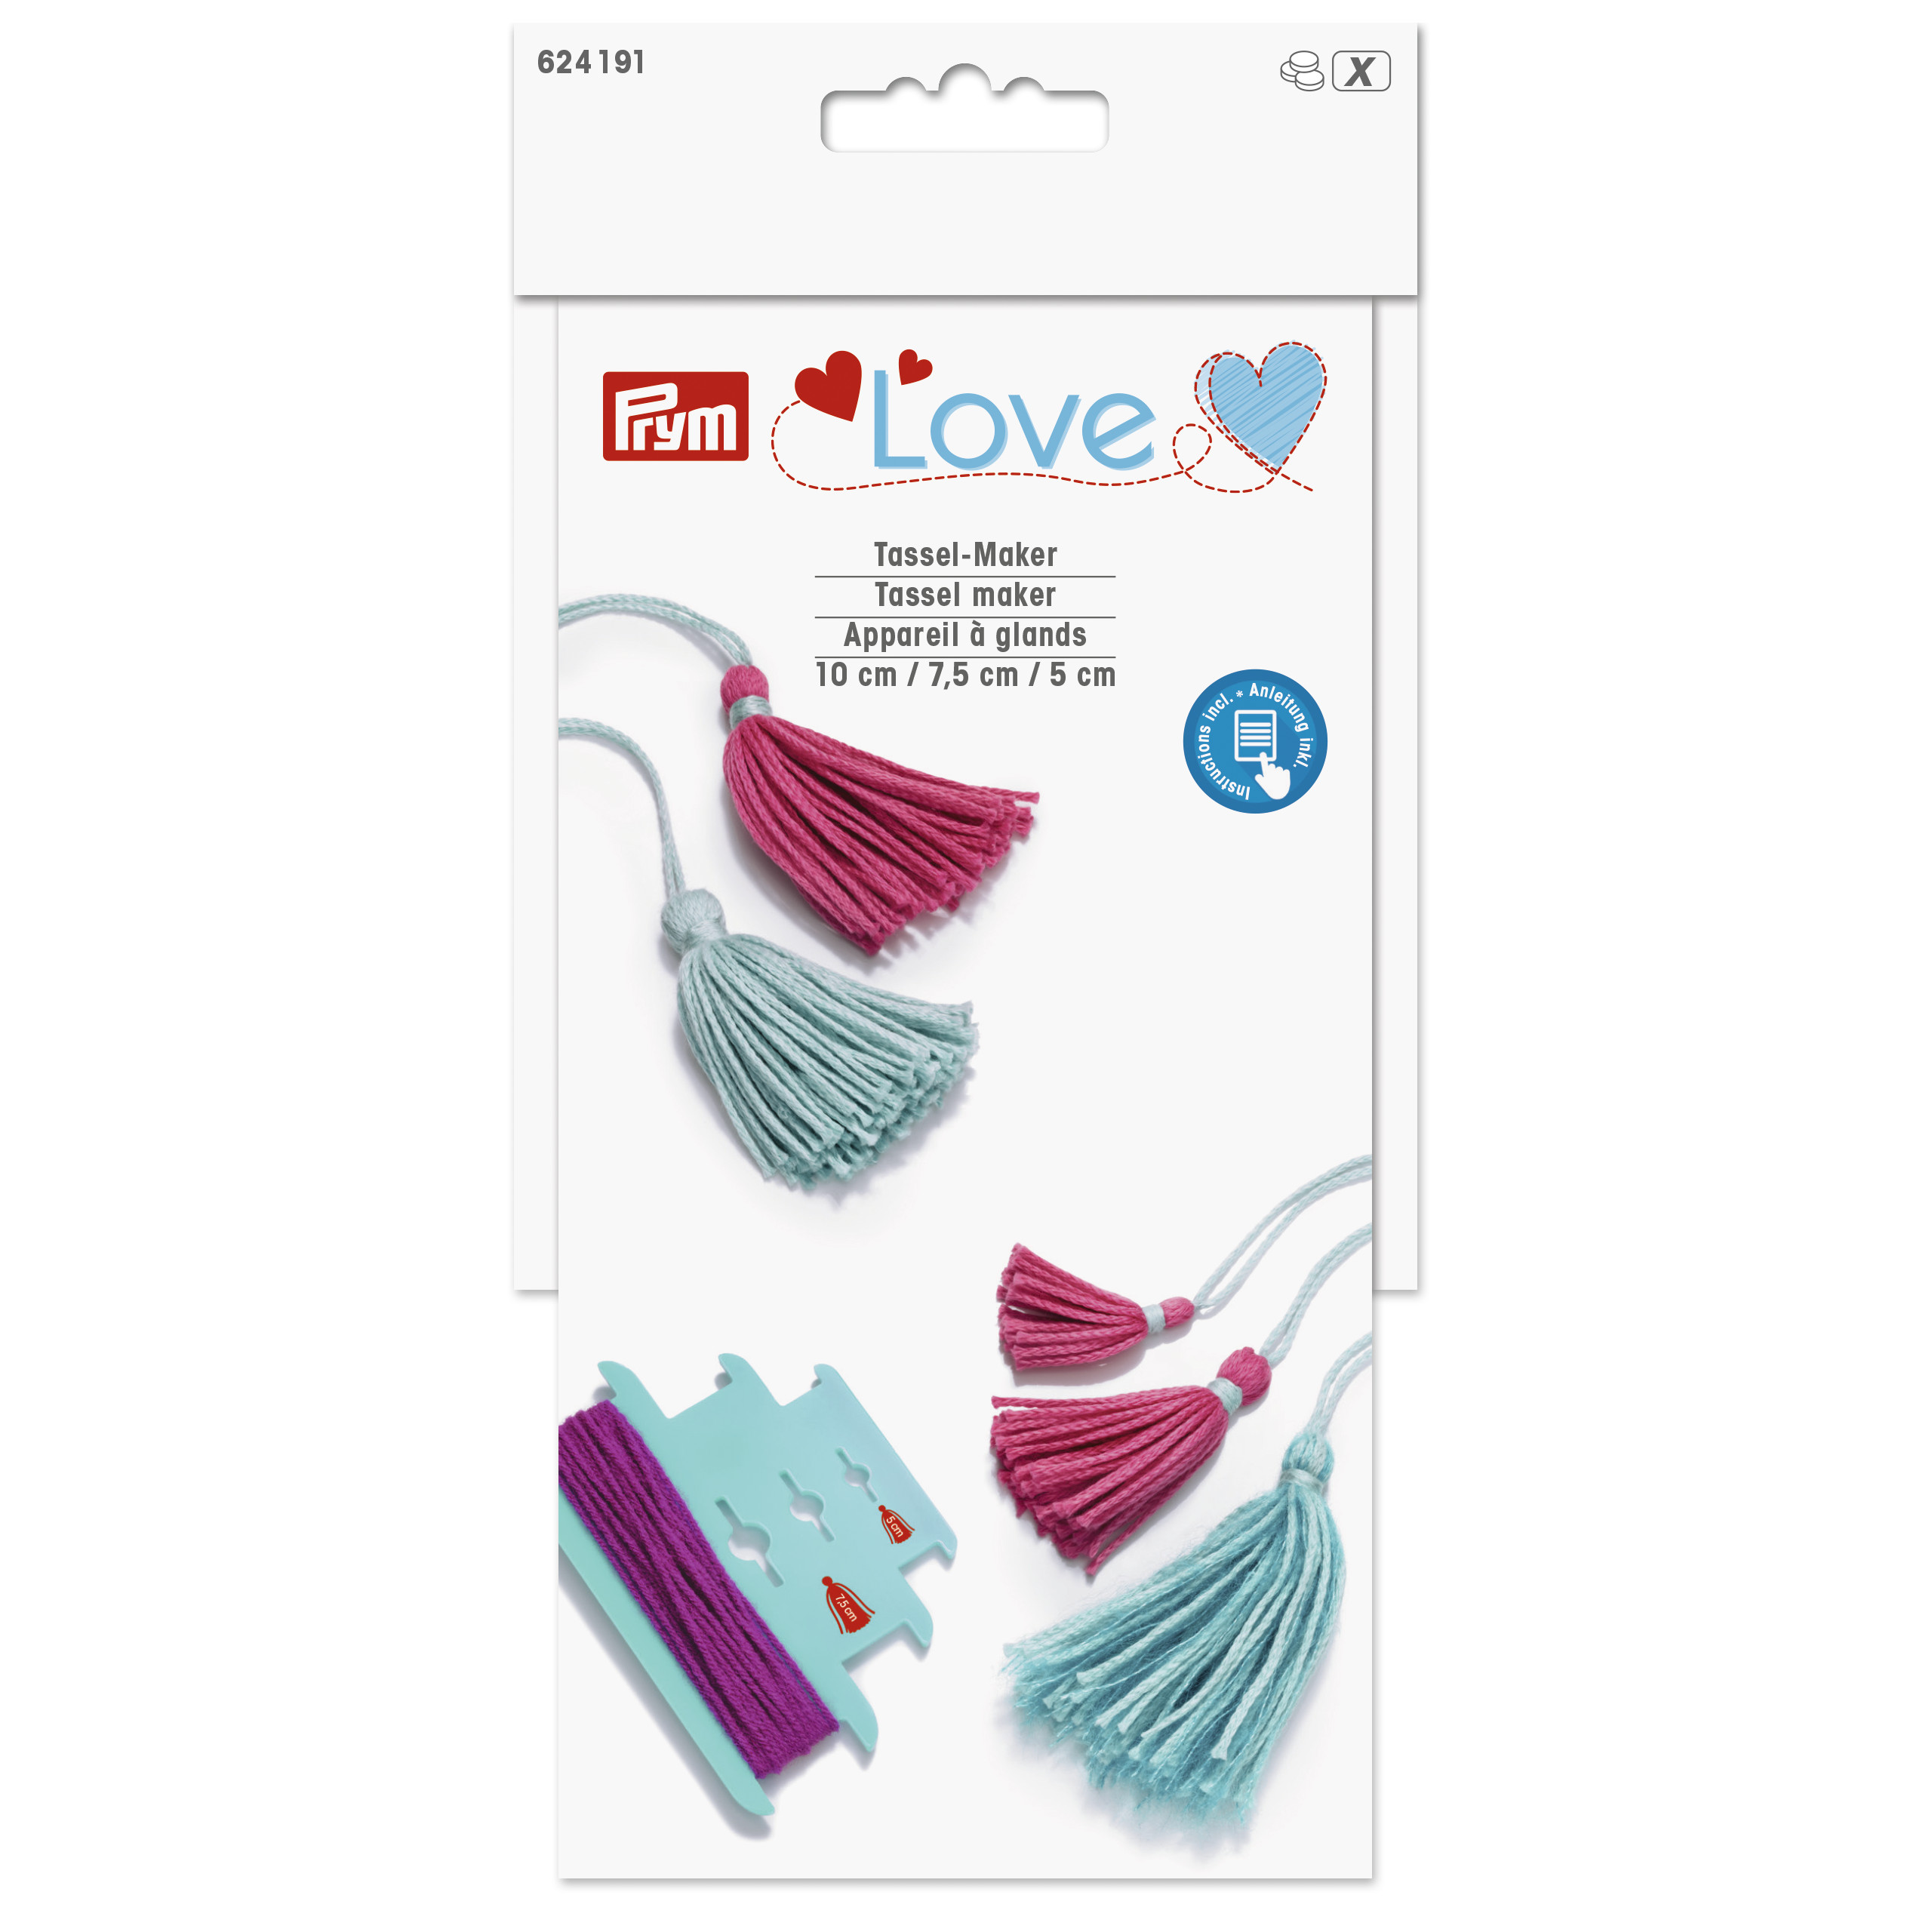 Prym 624191 Prym Love Tassel-Maker